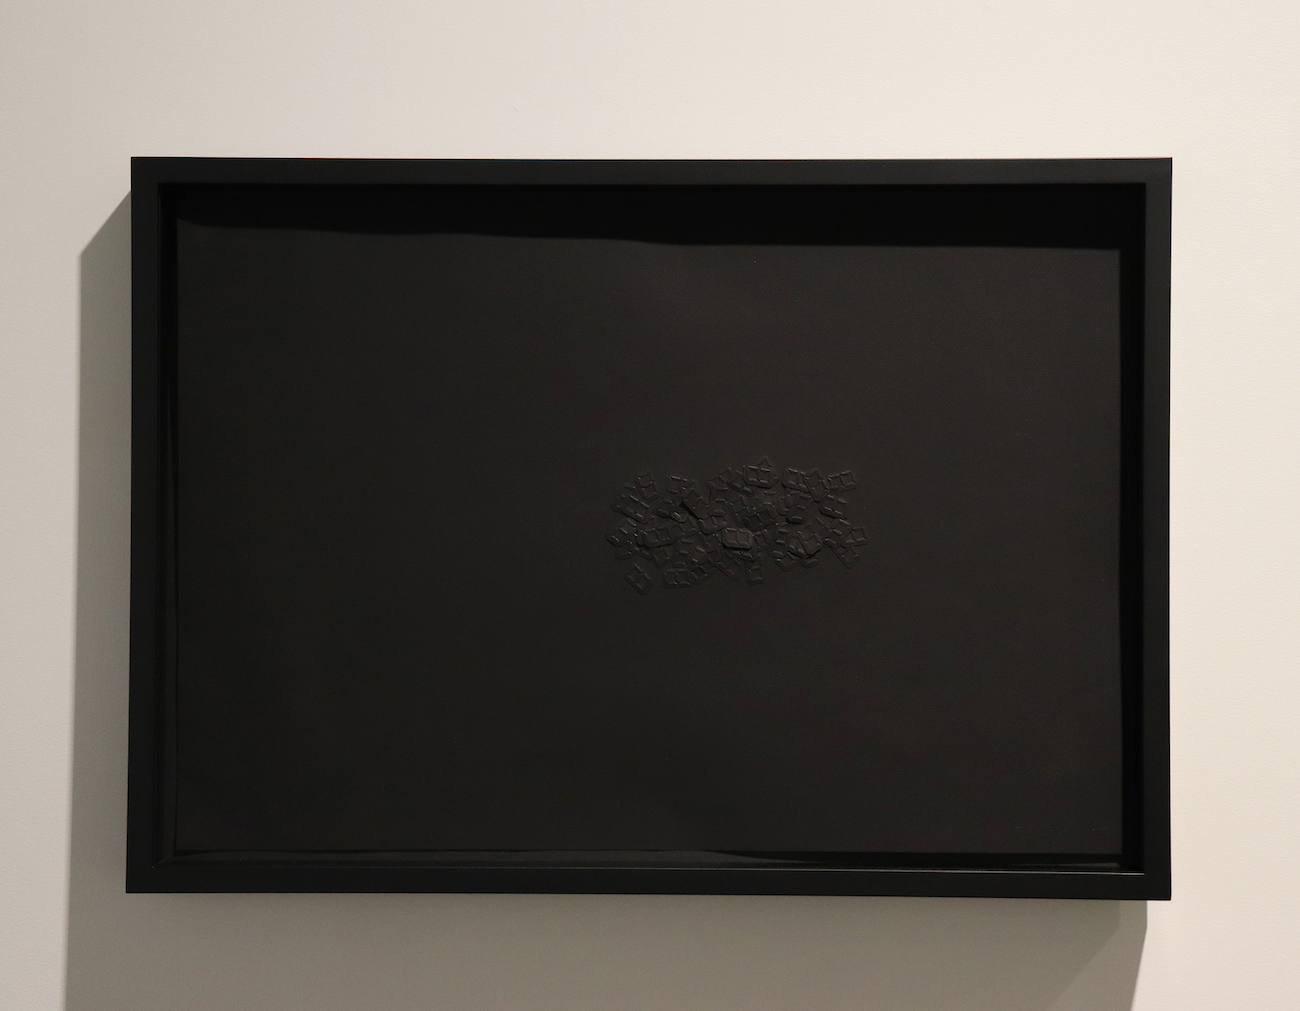 Tatsuo Miyajima, Φ, 1993, paper, embossing and collage, 37.6 x 54.6 cm (sheet),  41.8 x 59 cm (frame)